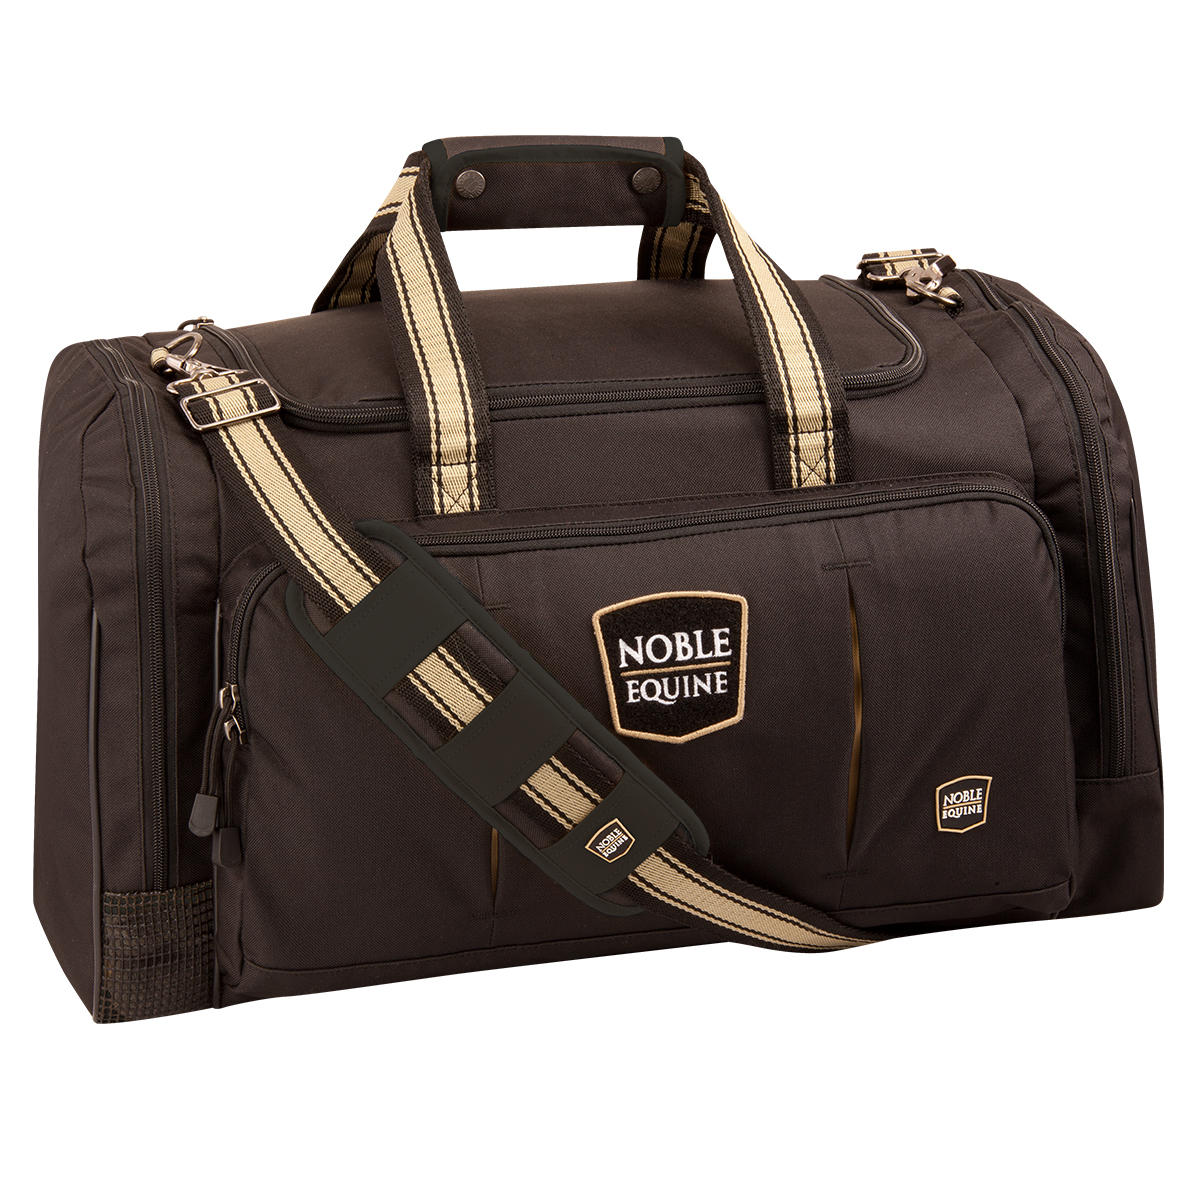 Noble Equine 5.2 Hands Duffle